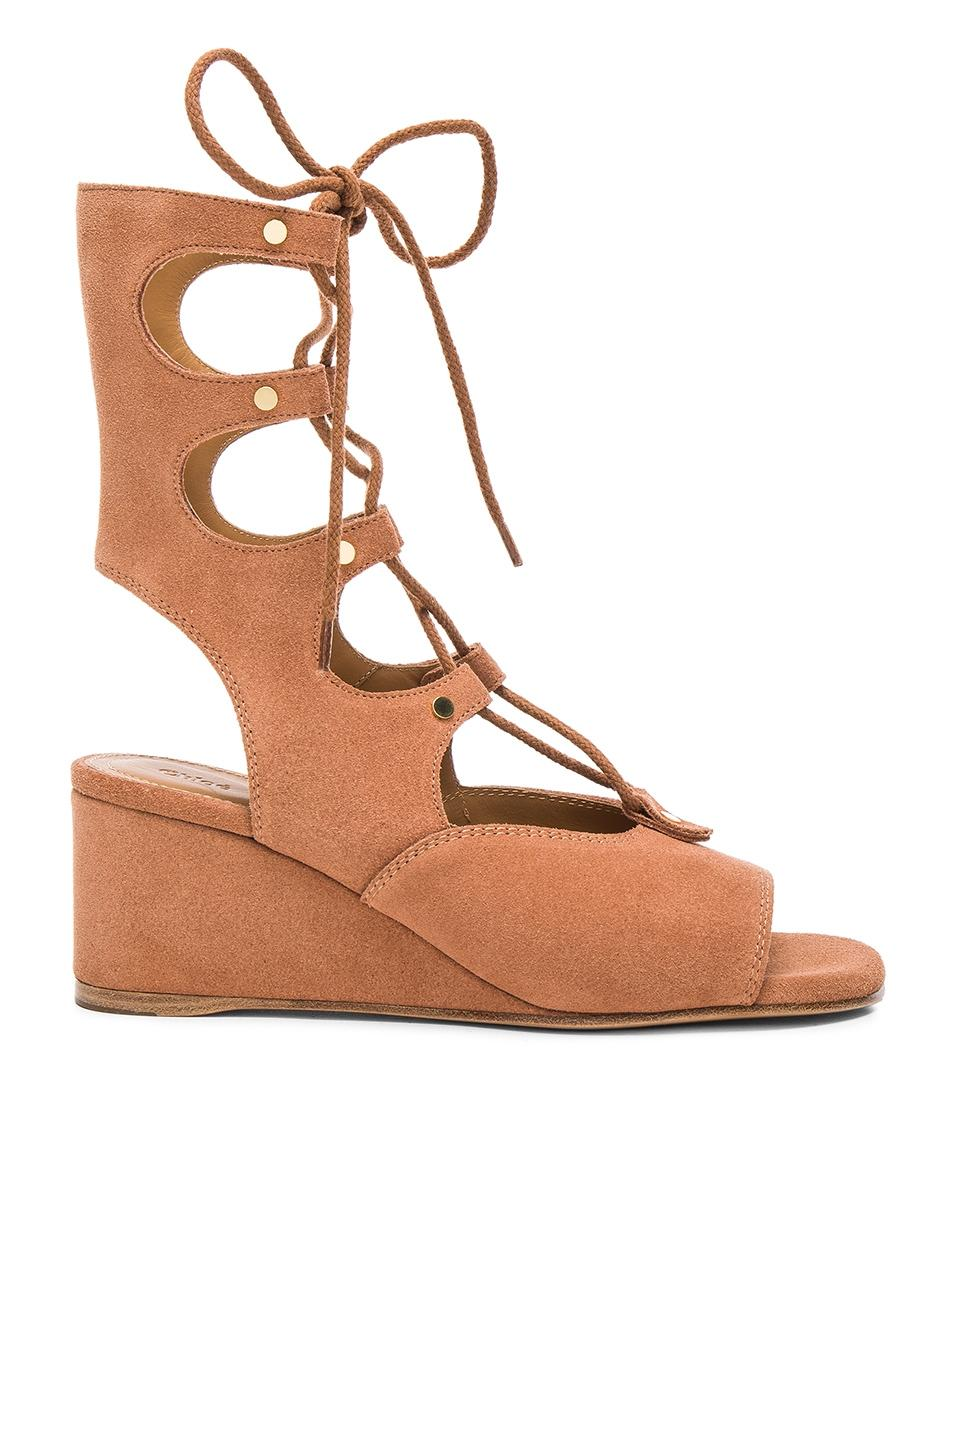 Chloé Brown Suede Foster Gladiator Wedge In Camel Sandals Size EU 38 (Approx. US 8) Regular (M, B)